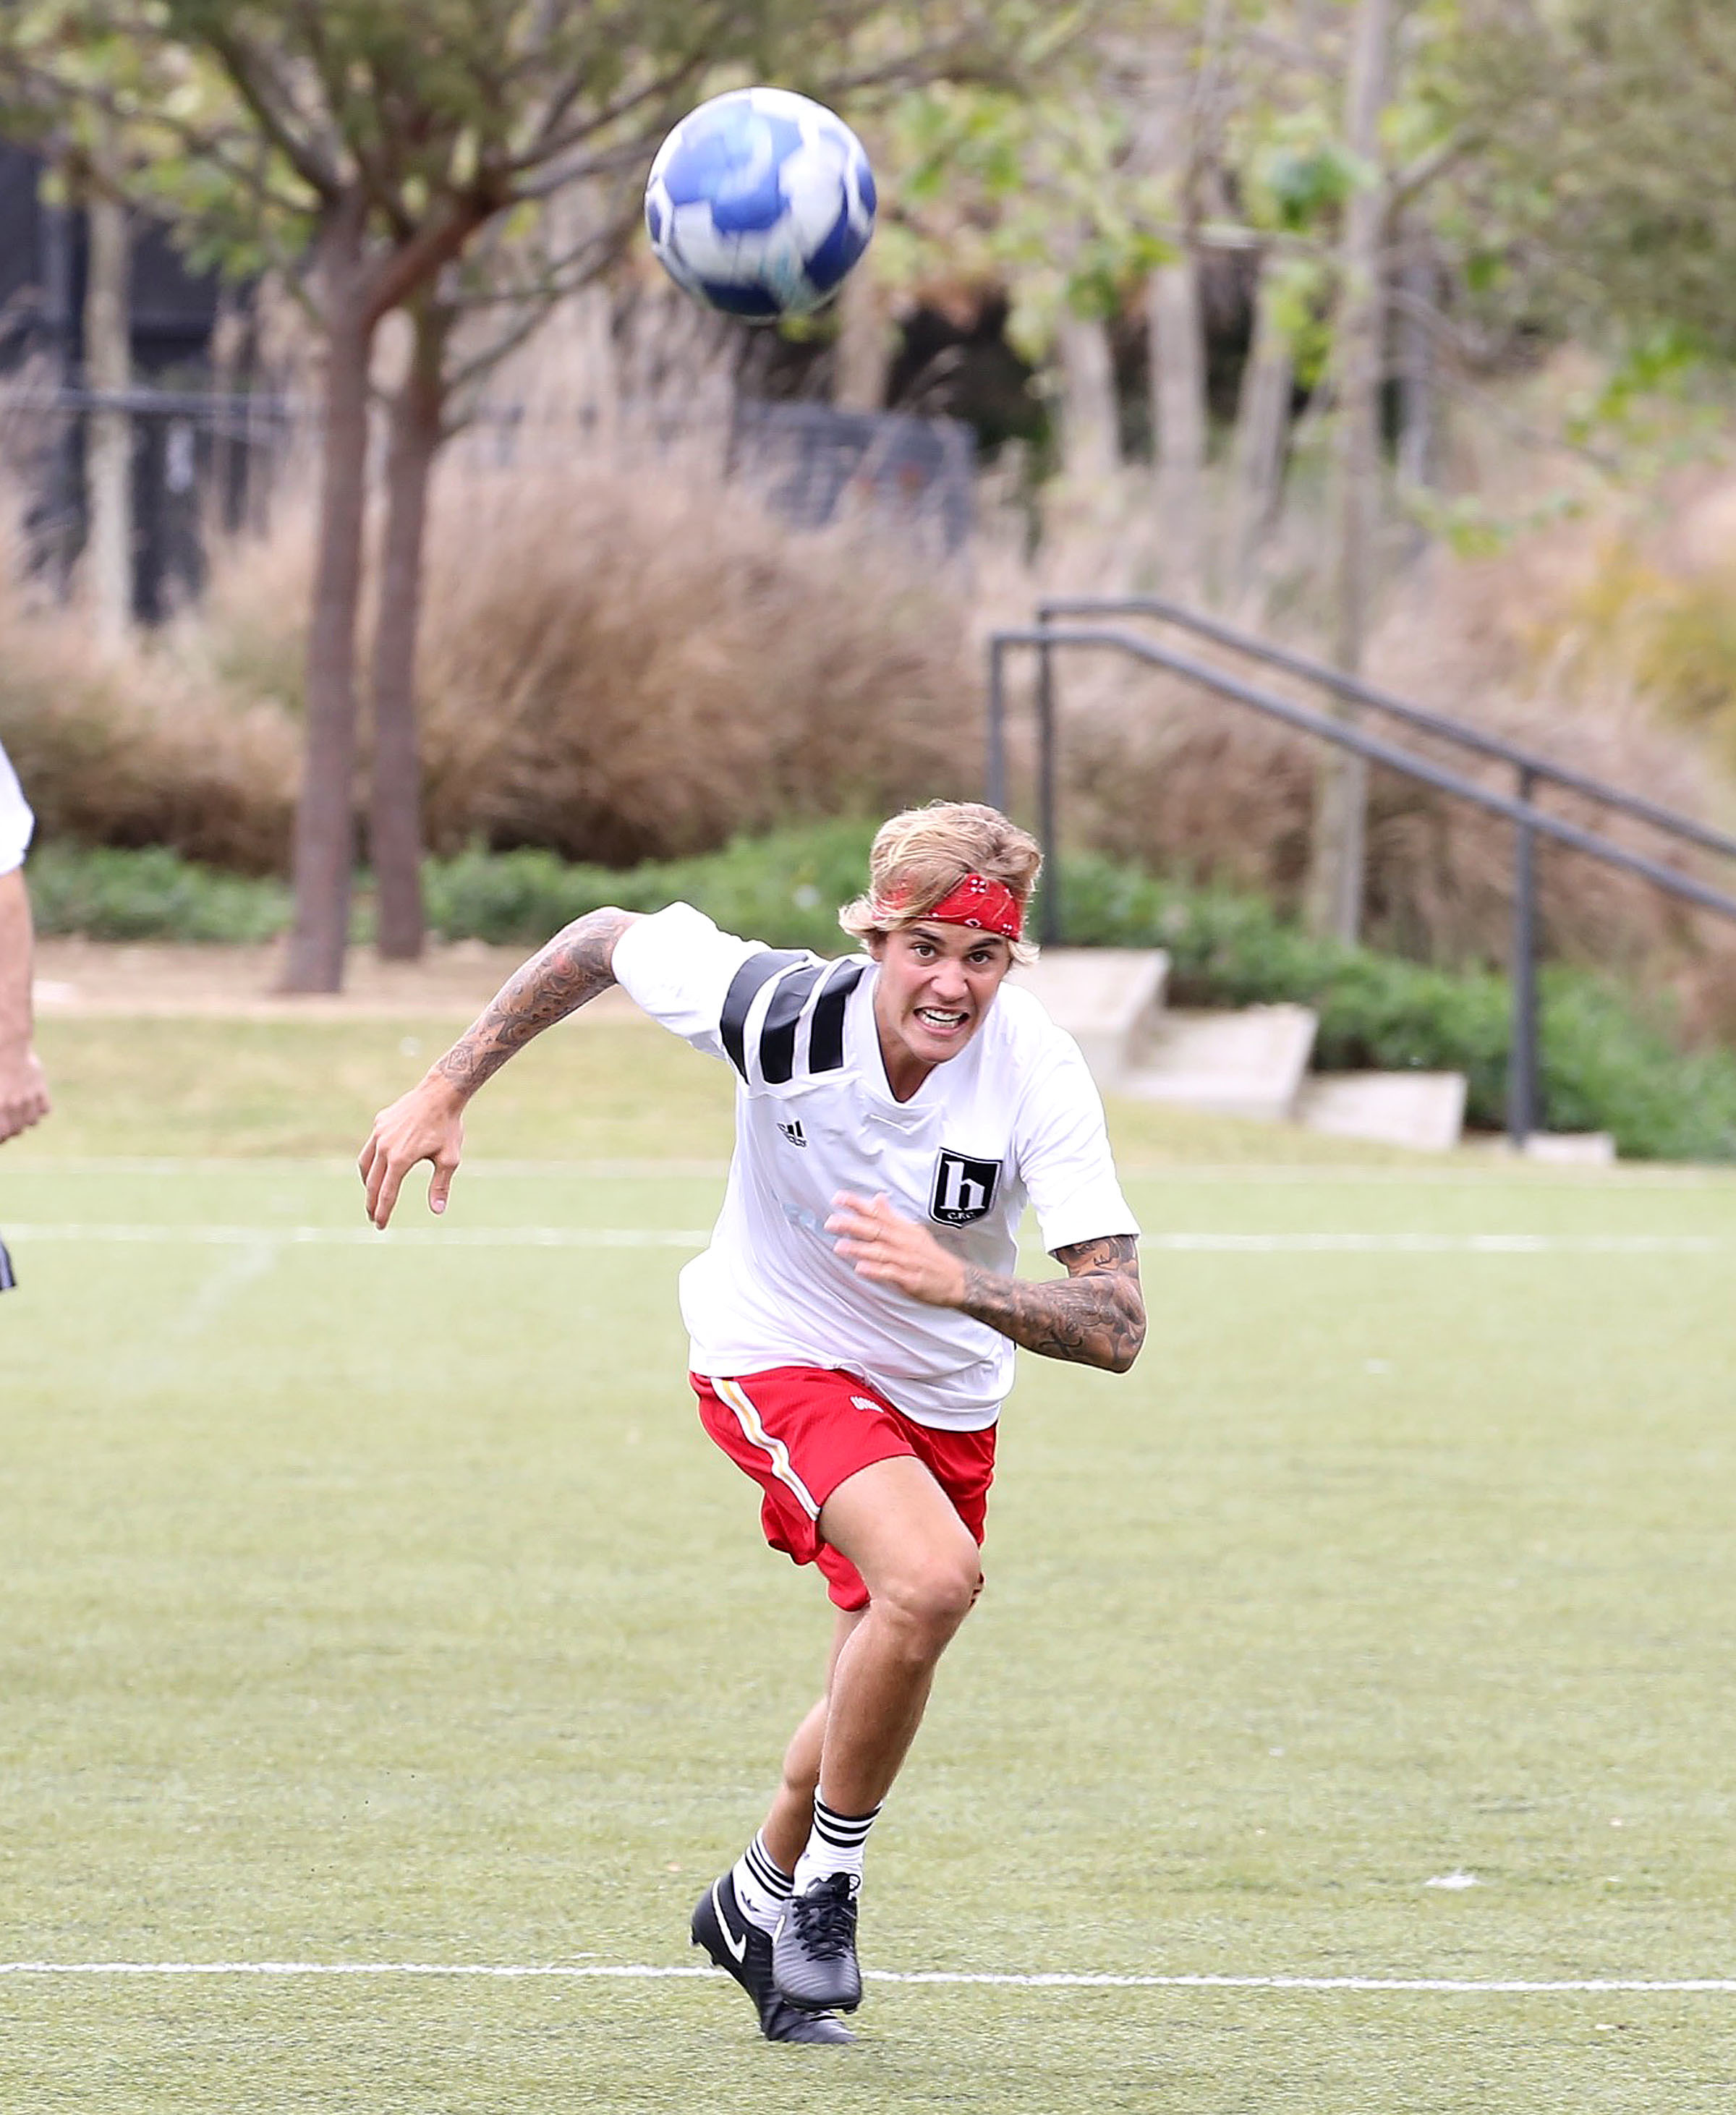 Justin Bieber plays soccer in Los Angeles on April 9, 2018.